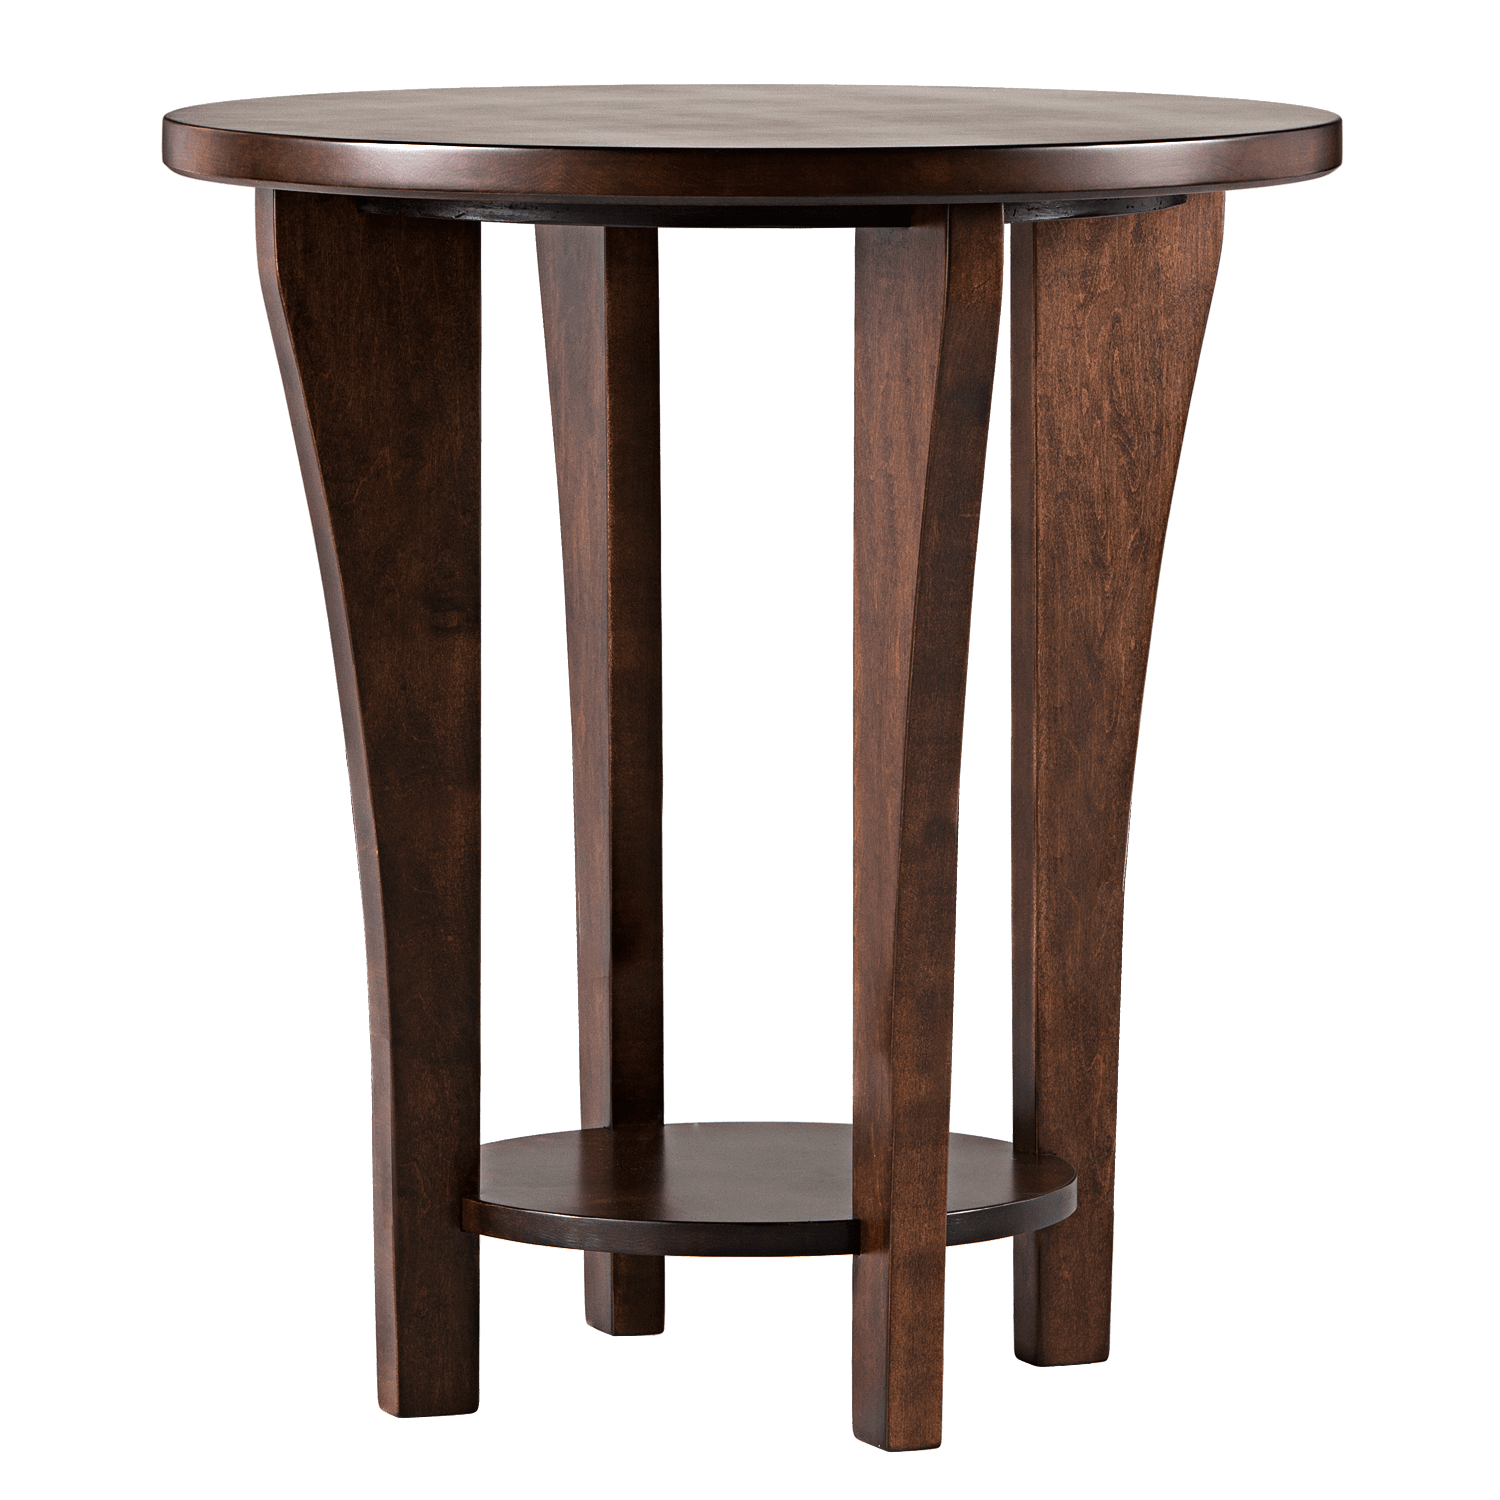 Entrance Table Canterbury Round Entrance Table Hotzon Furniture Inc